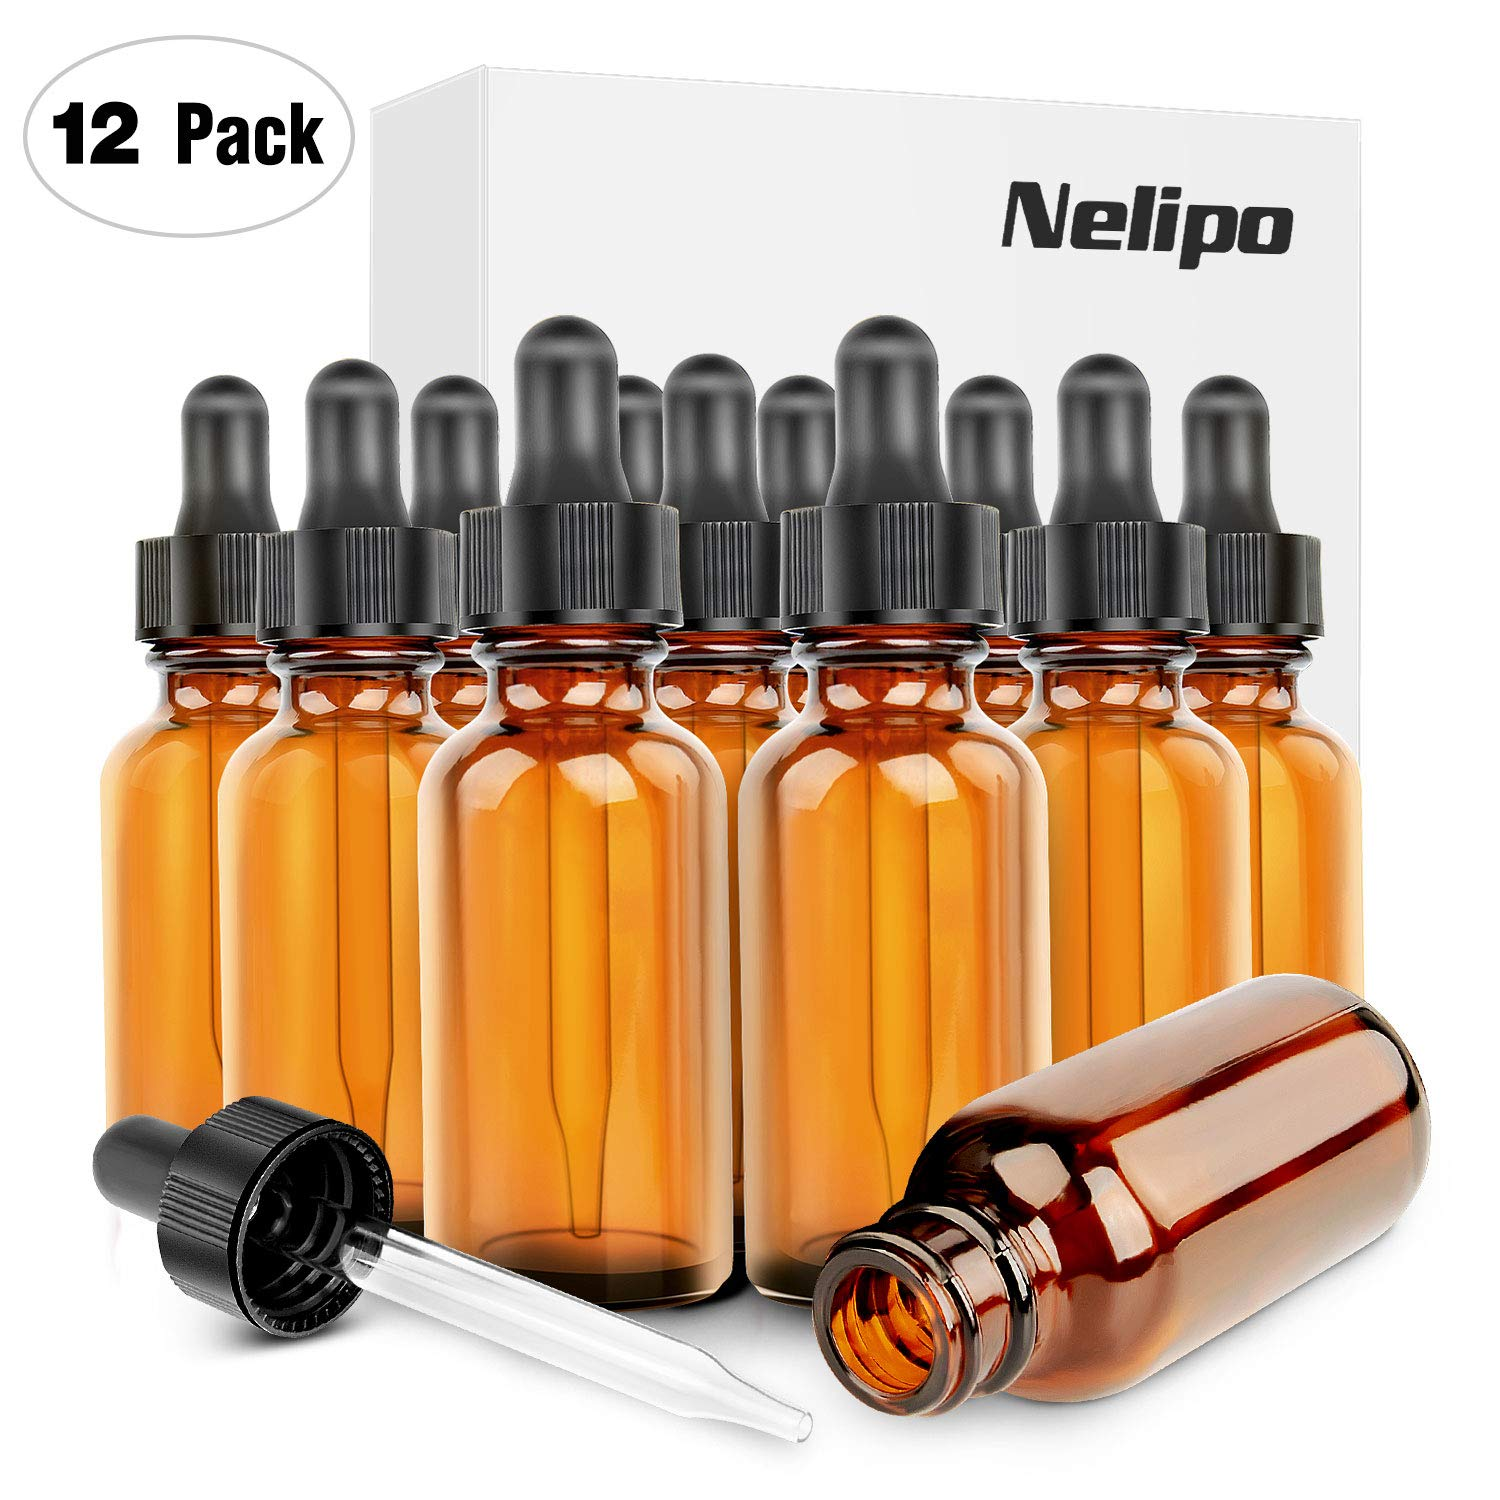 Nelipo 1oz Amber Glass Bottles for Essential Oils with Glass Eye Dropper - Pack of 12 by NELIPO